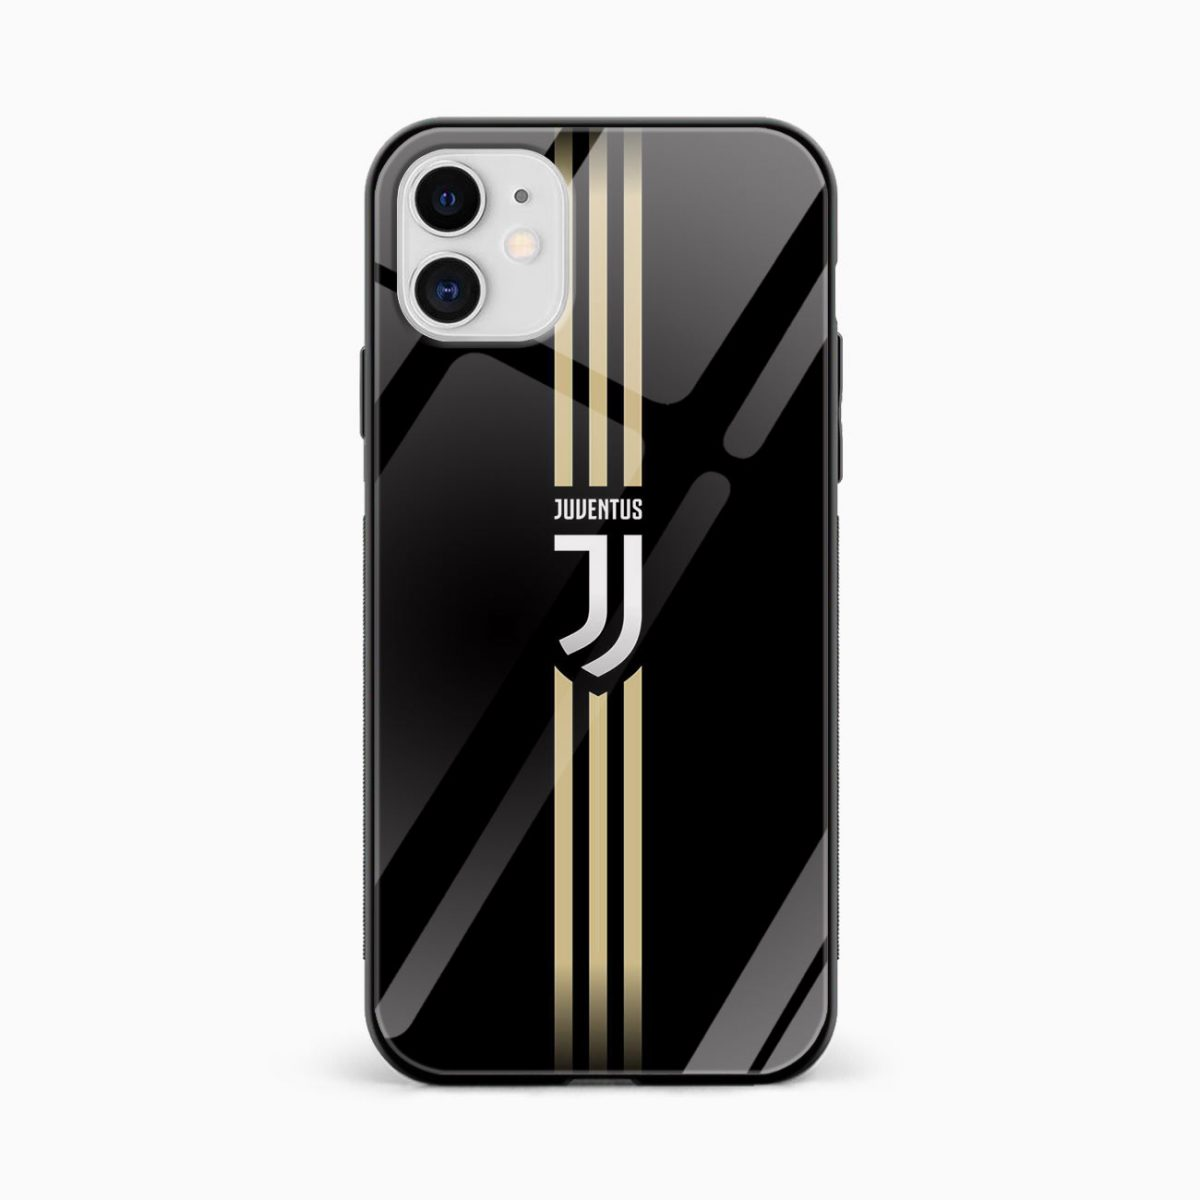 juventus iphone mobile cover front view